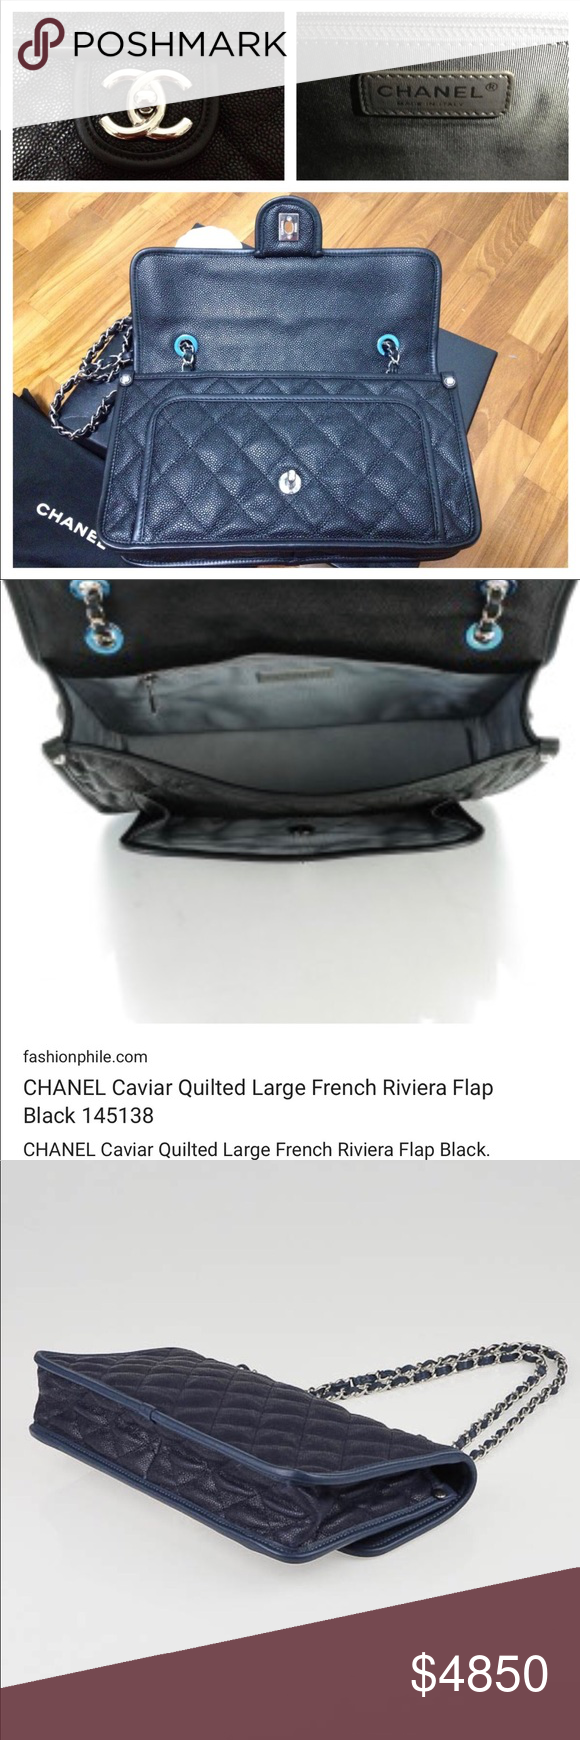 26488fe55f4b Authentic Chanel French Riviera blk Med Caviar bag Beautiful Chanel black  caviar bag with silver single